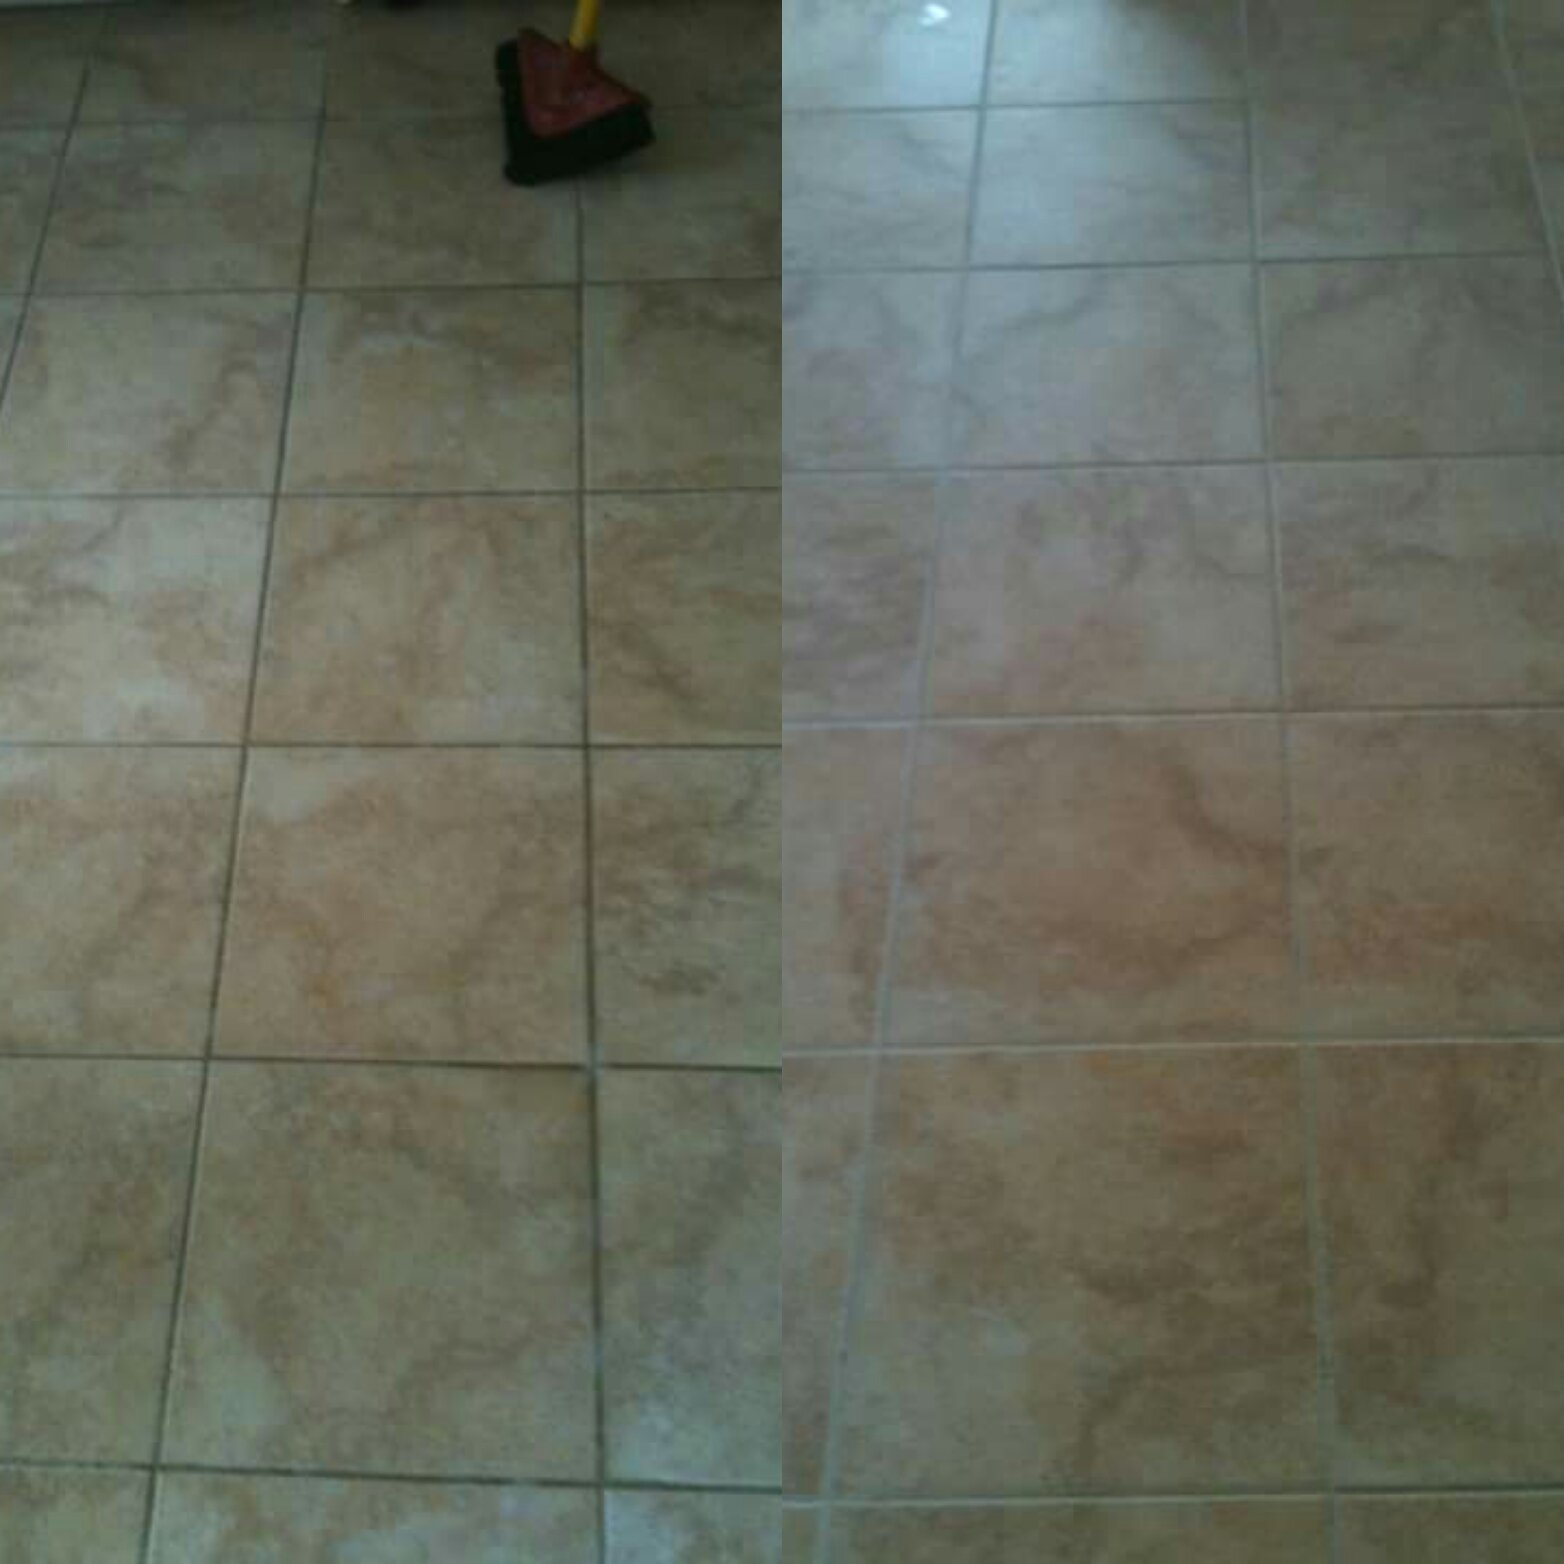 Tile cleaning grout cleaning edmond ok top grade natural stone cleaning services dailygadgetfo Gallery